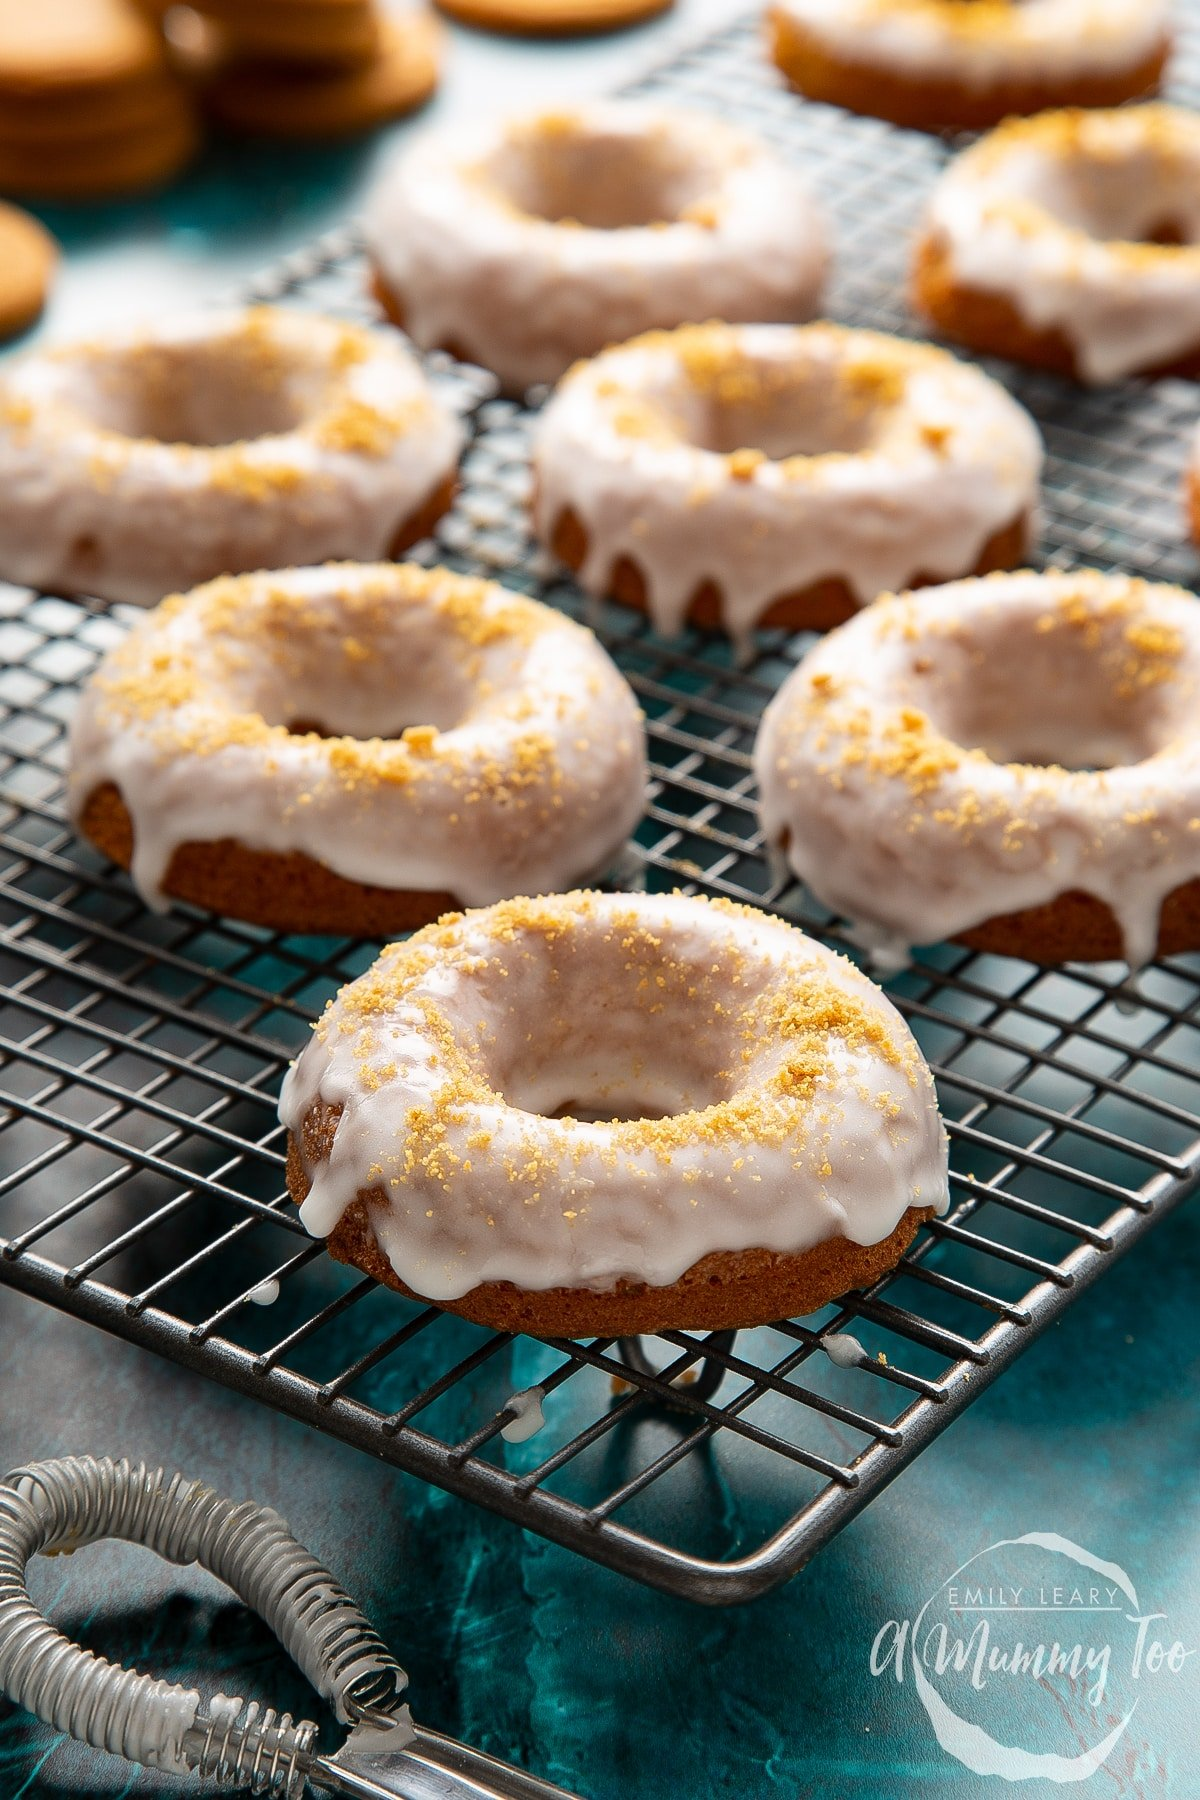 Baked gingerbread donuts with a lemon glaze on a wire cooling rack.